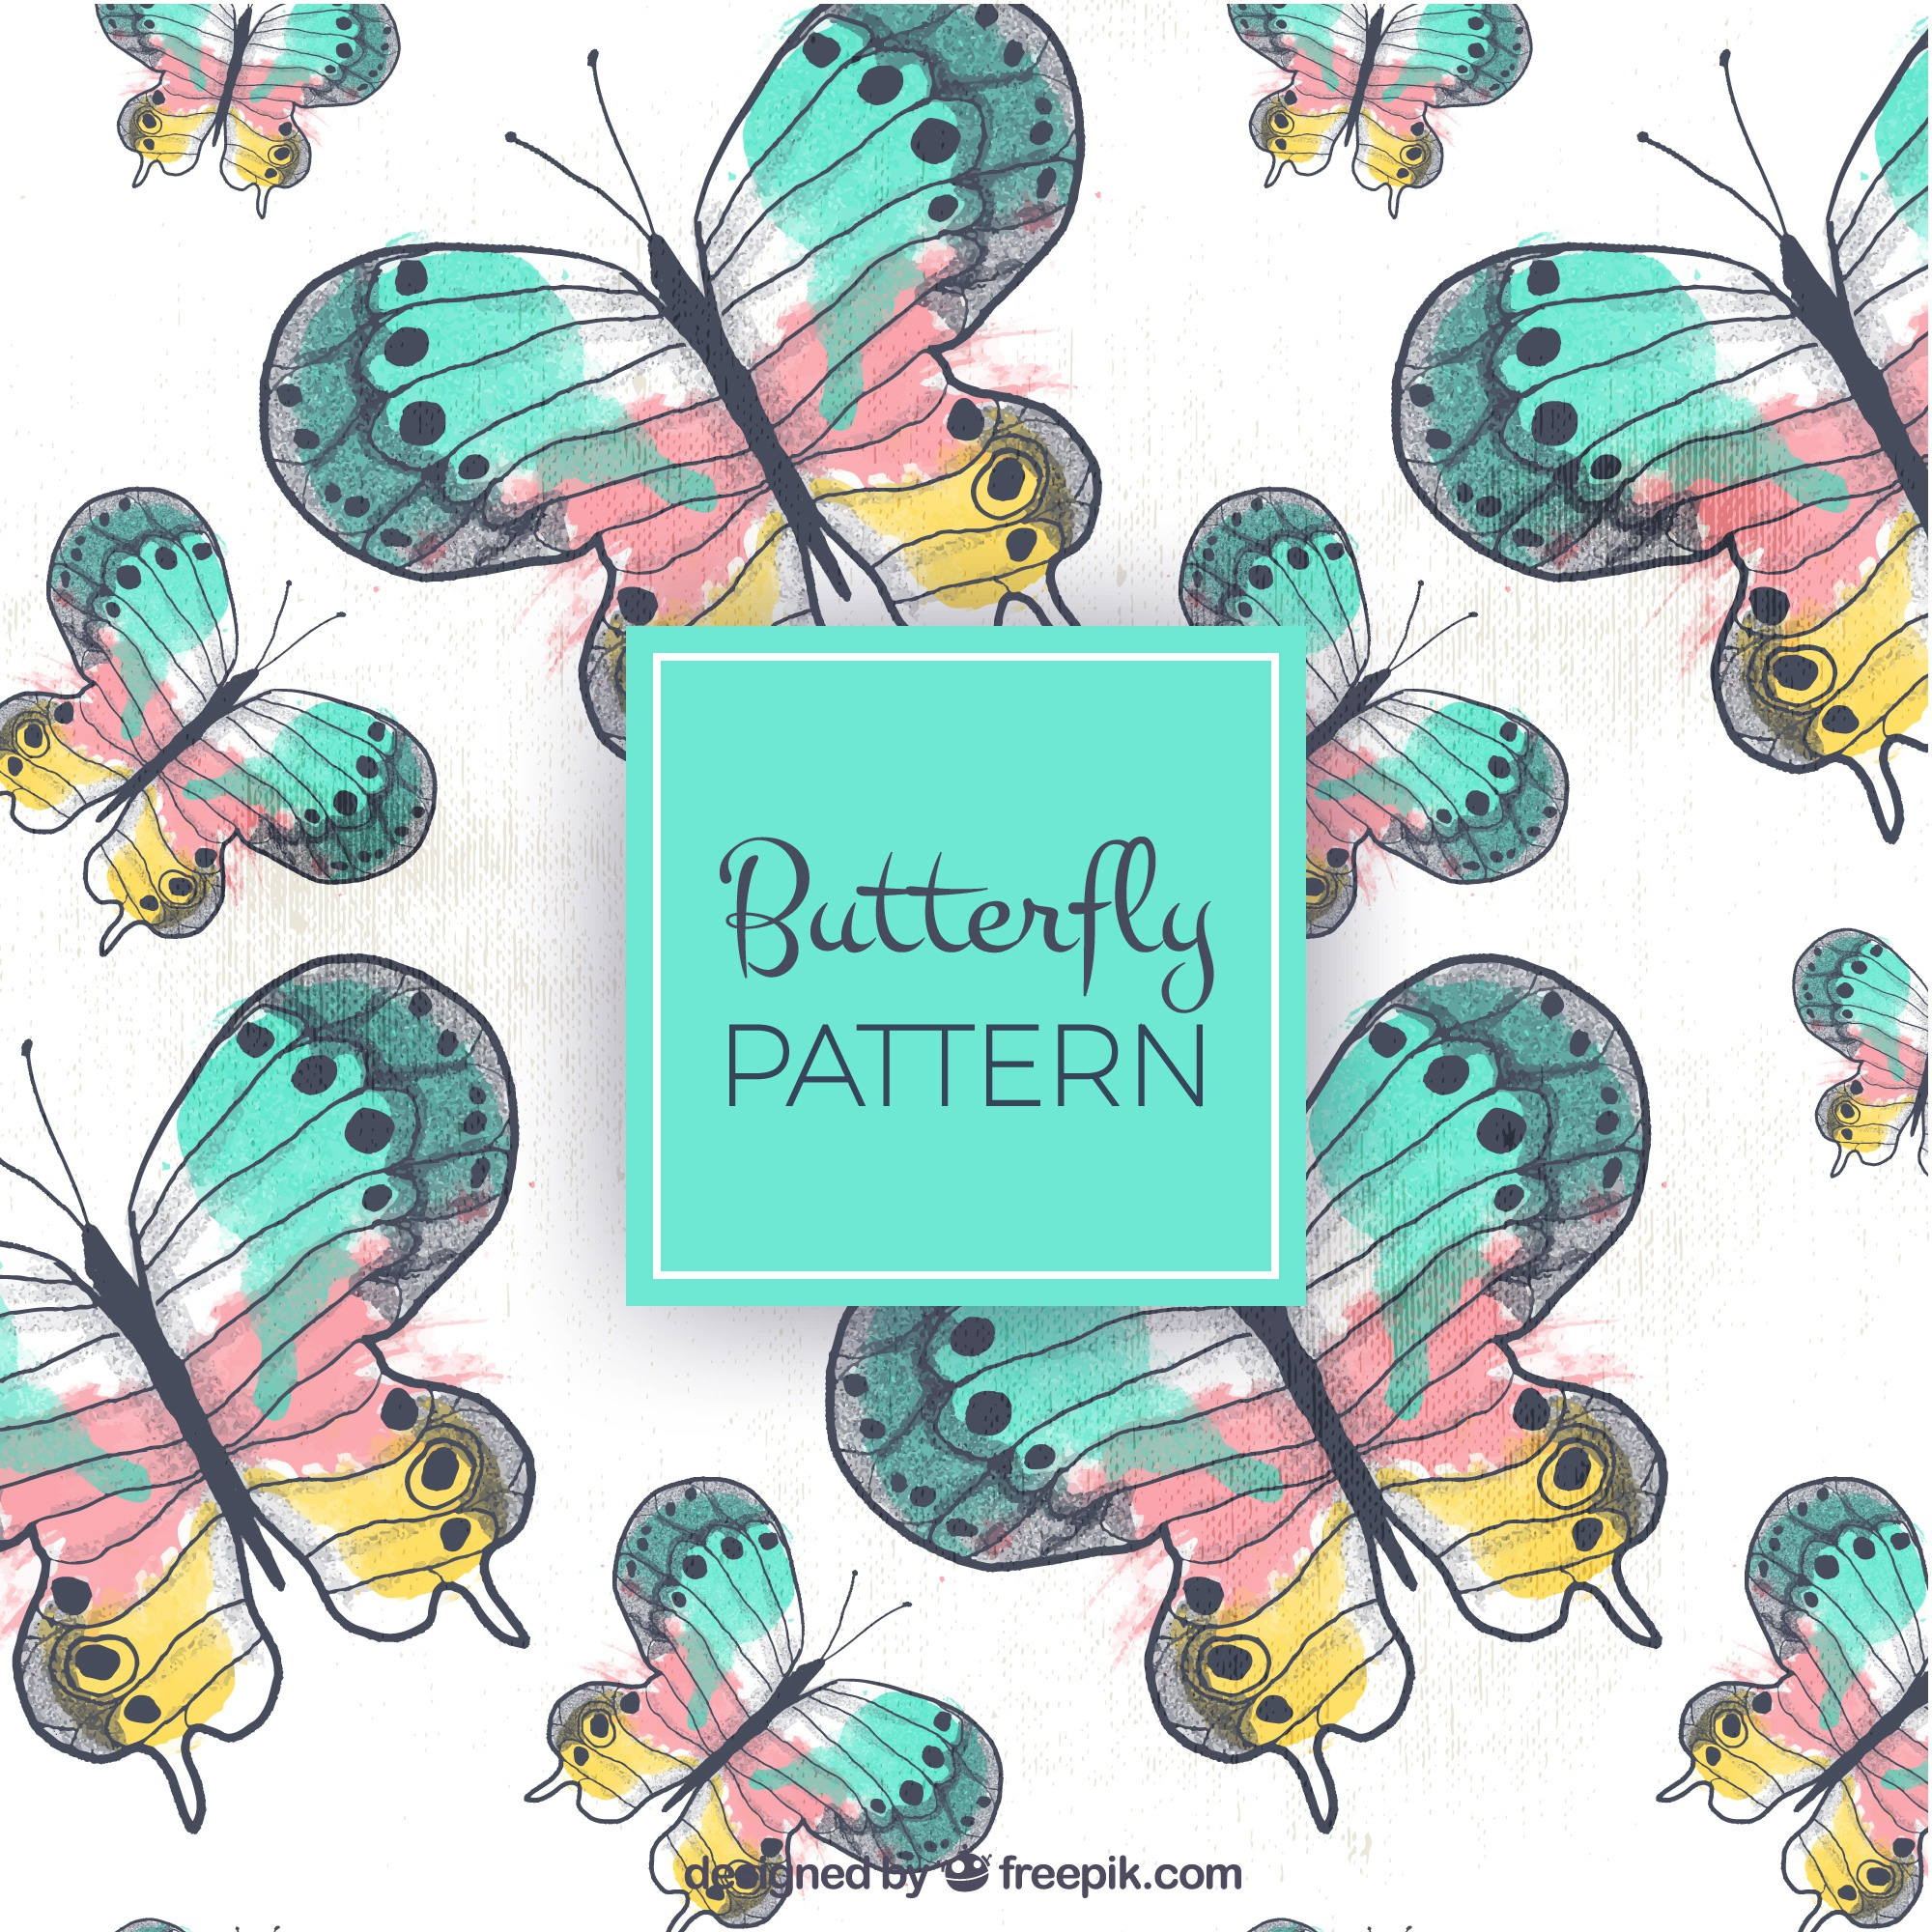 Hand-drawn pattern of colored butterflies